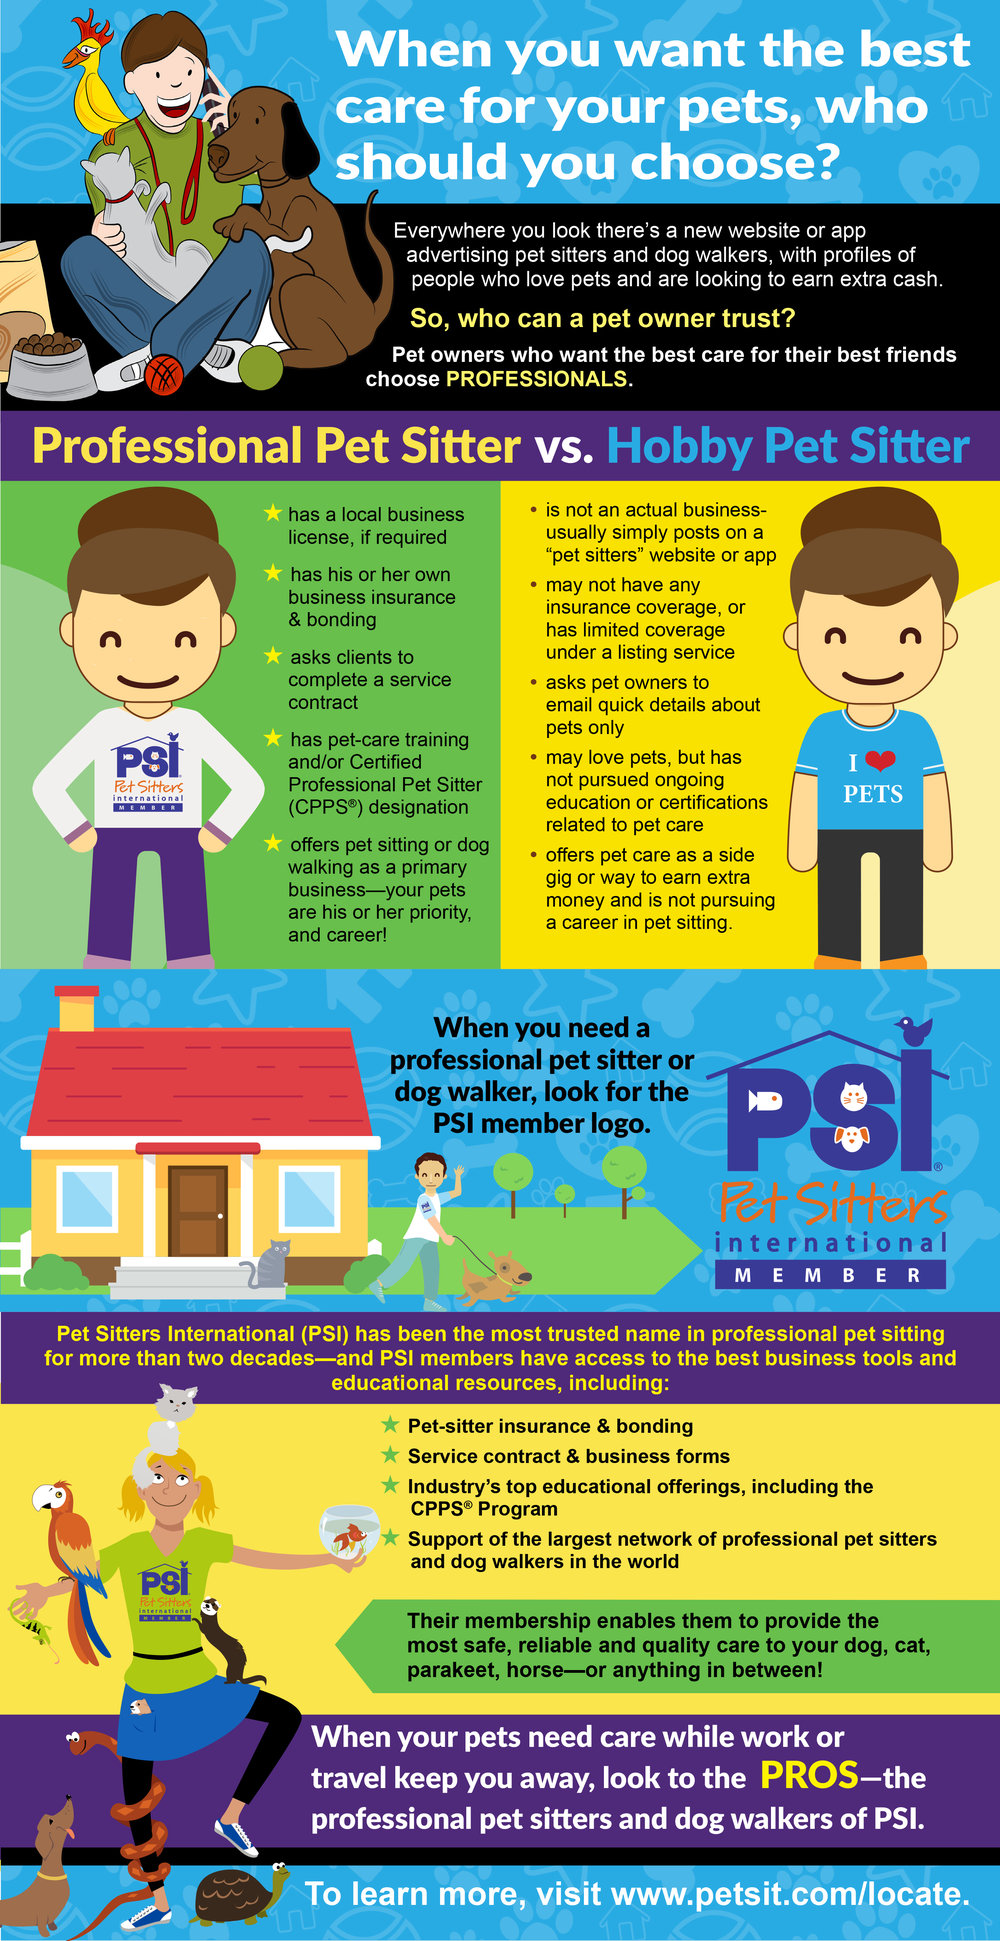 Choosing-a-professional-pet-sitter-infographic.jpg